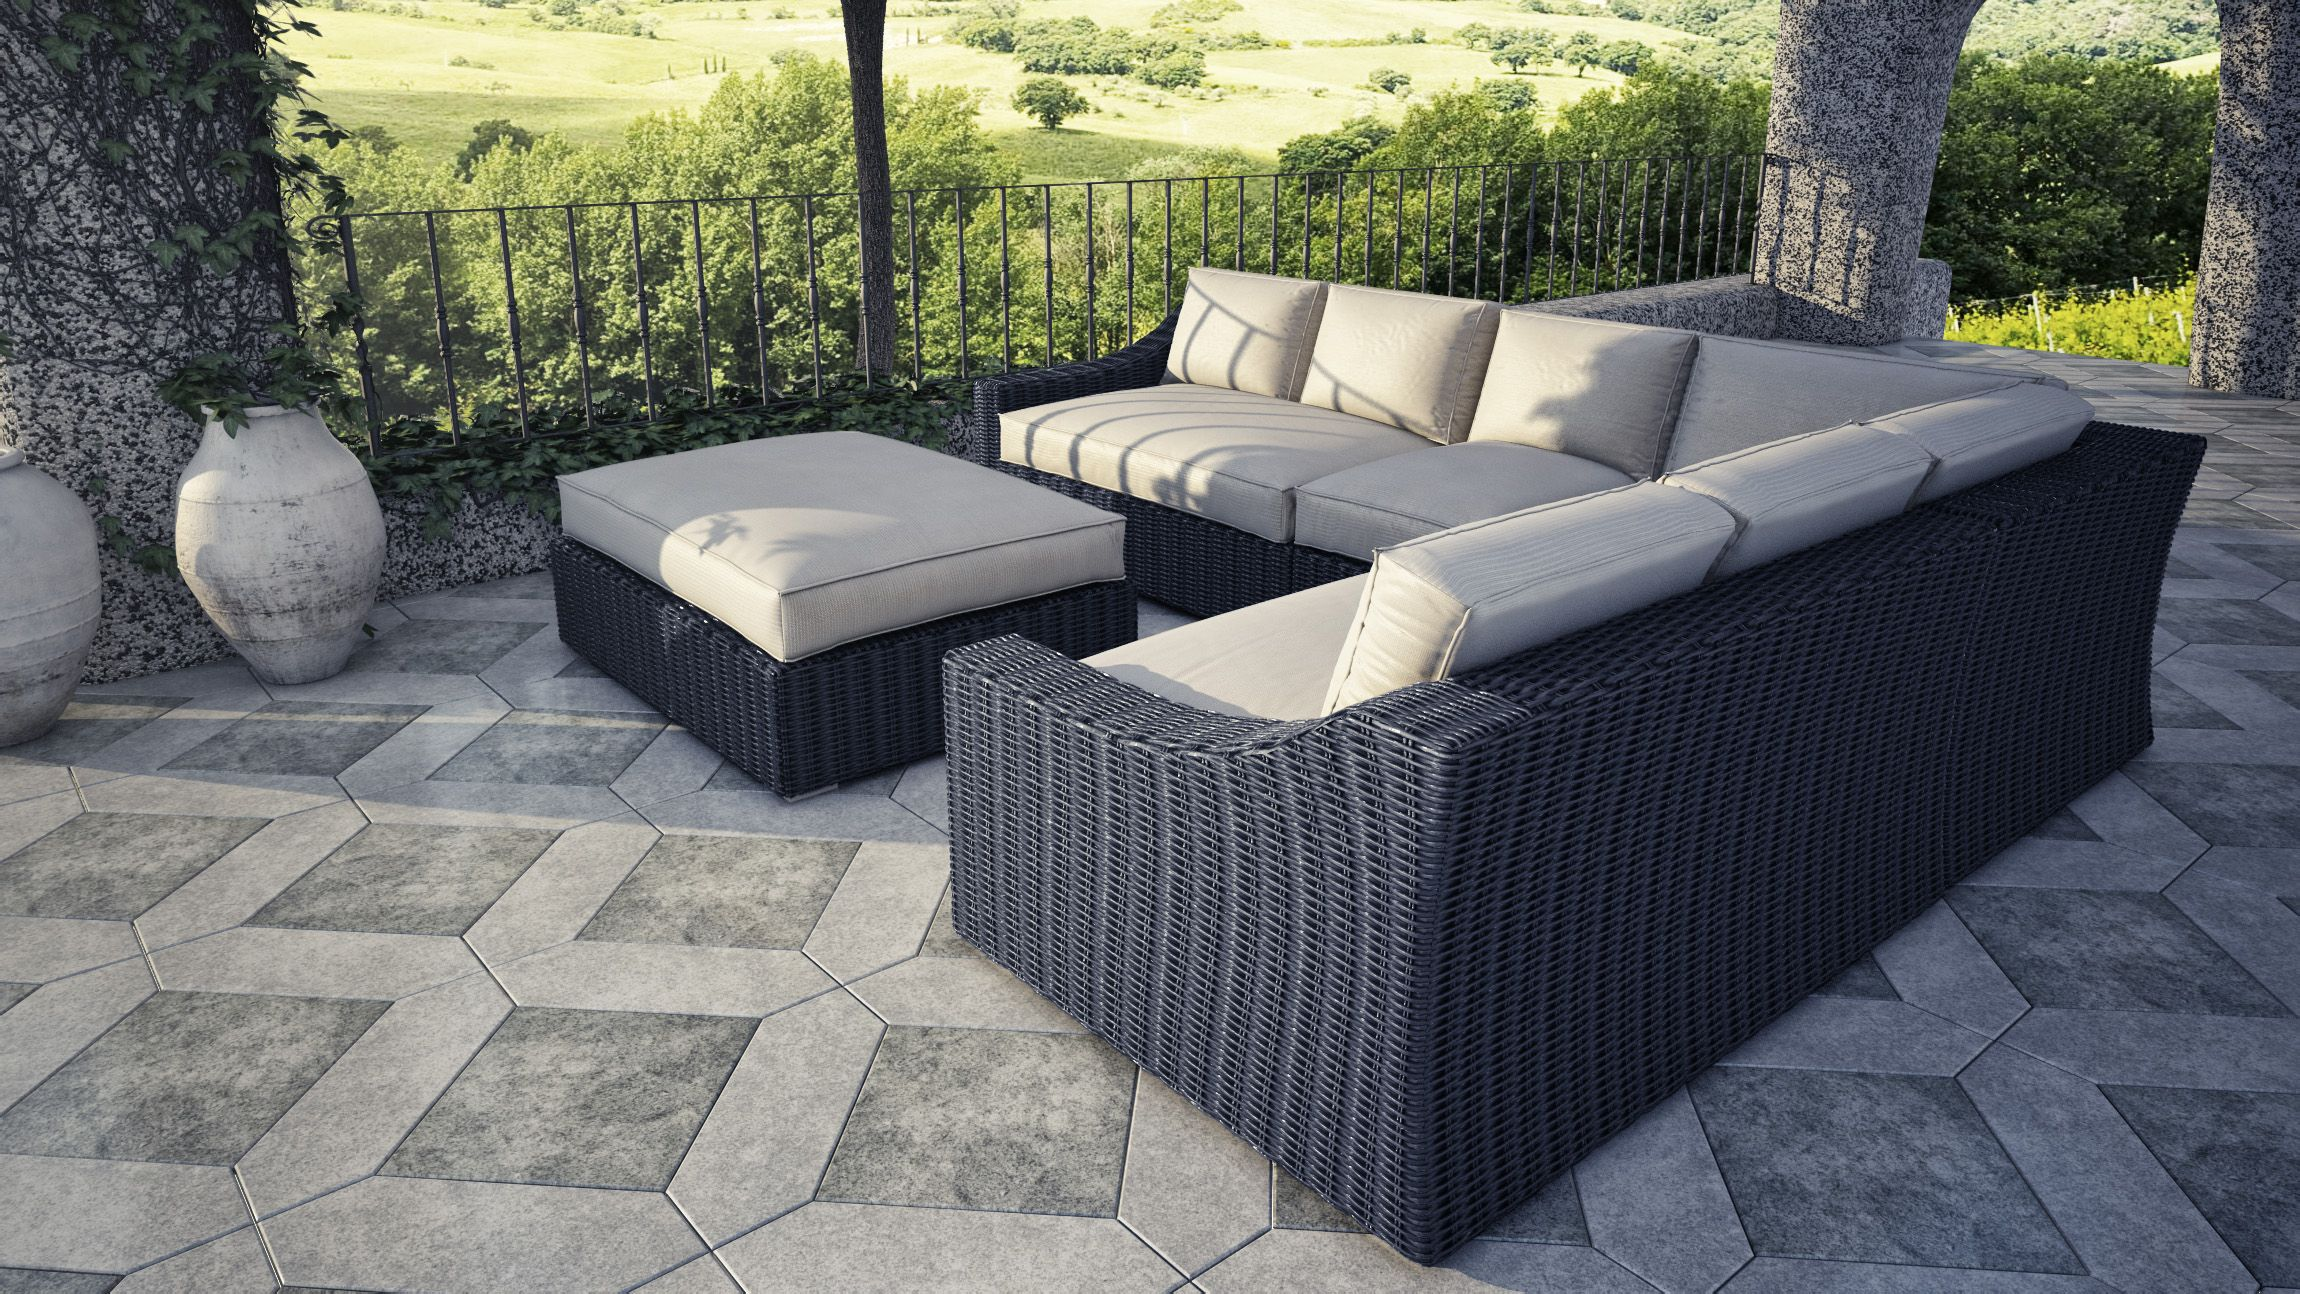 Tuscan Sectional Set Includes Left Arm 56 X41 X28 Right Arm 56 X41 X28 Corner 41 X41 X28 Wicker Patio Furniture Outdoor Sofa Sets Outdoor Patio Furniture